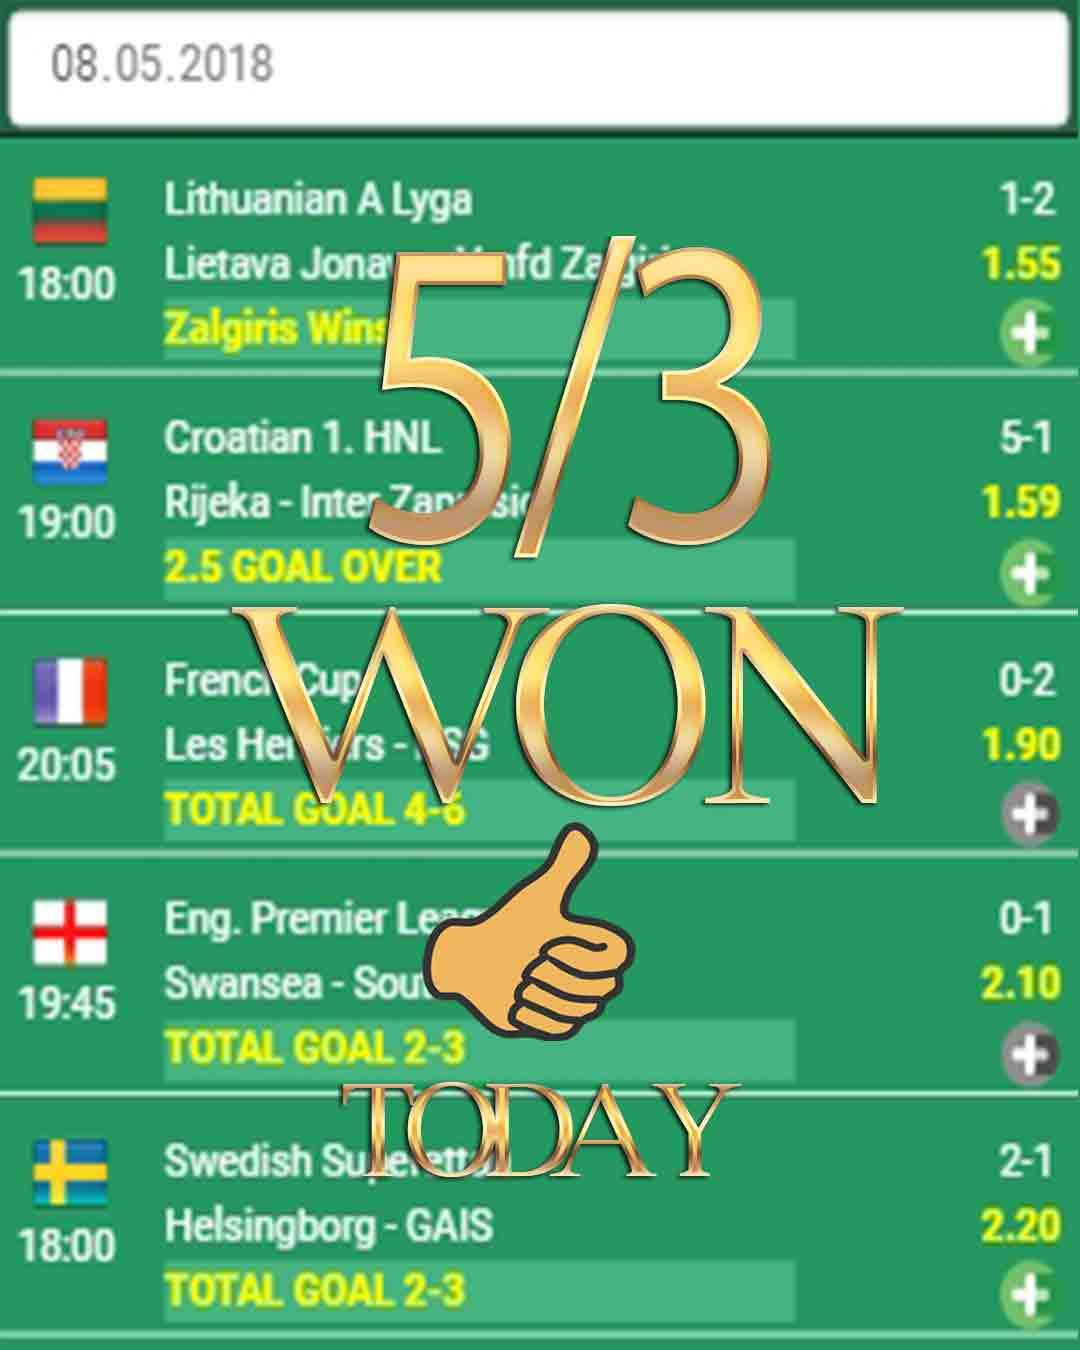 Vip sports betting online coral eclipse stakes betting